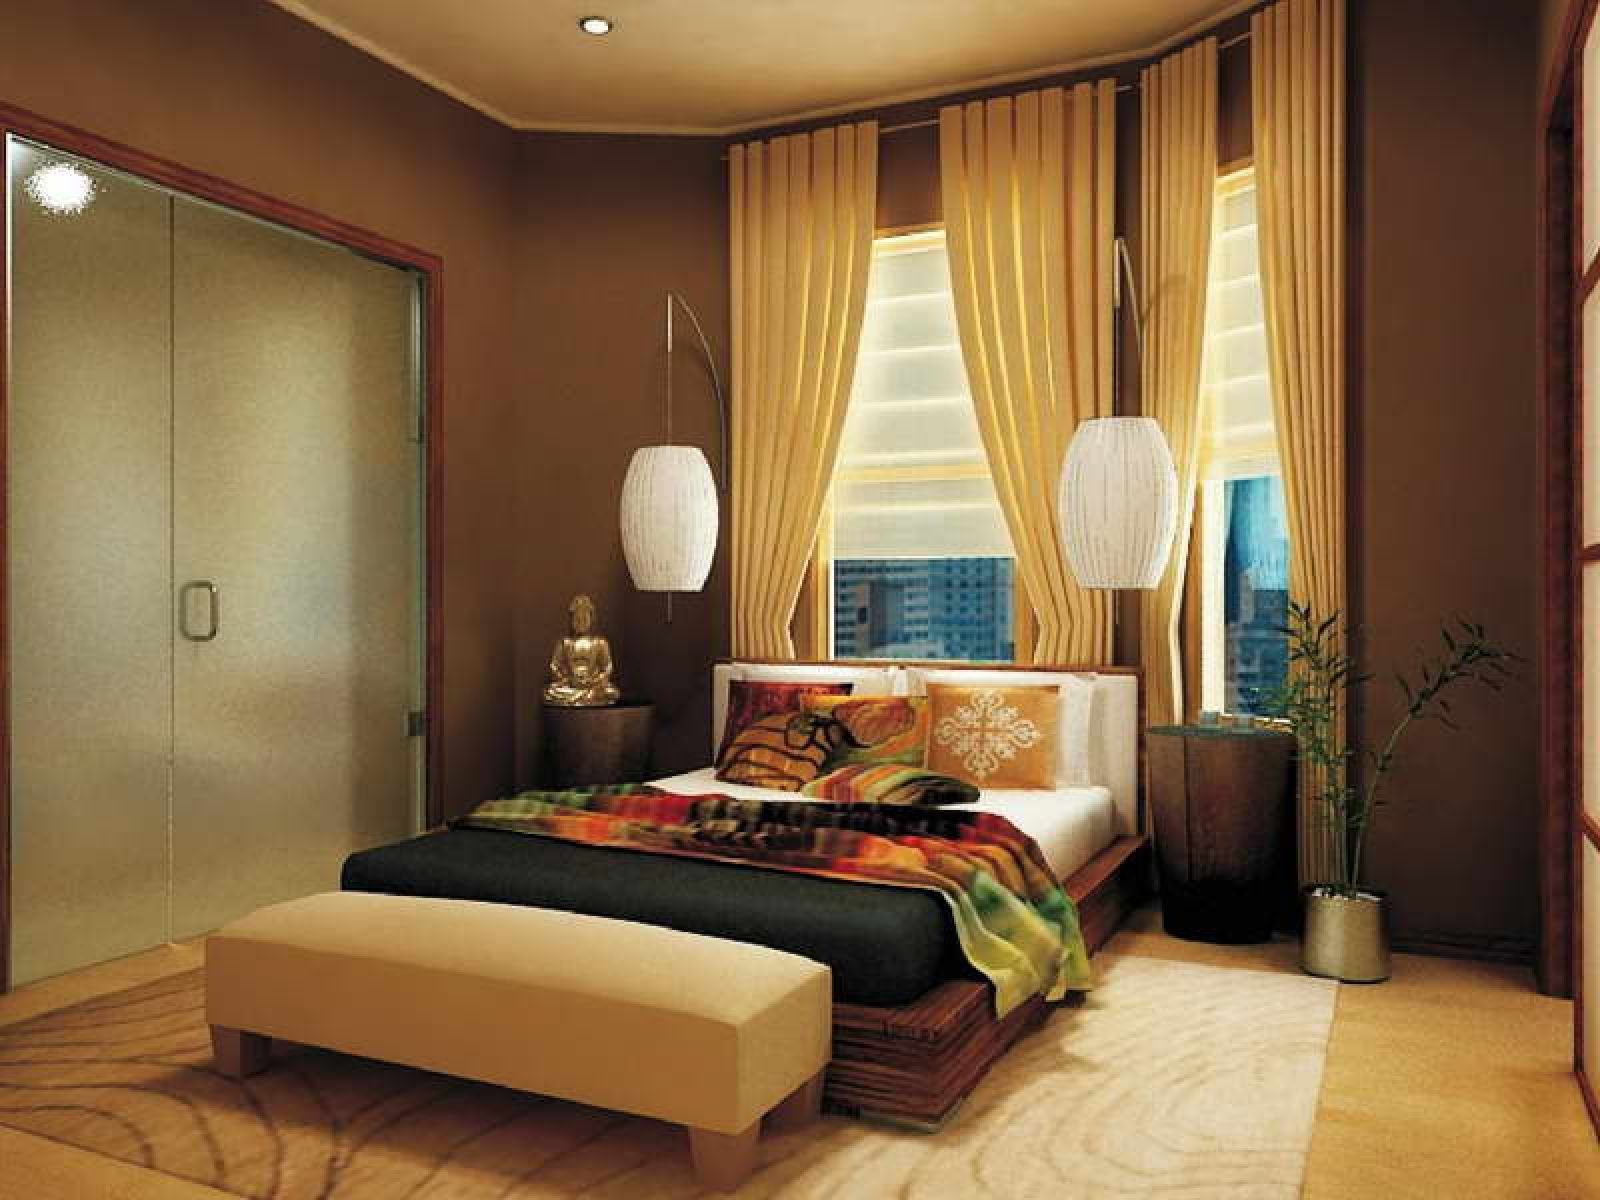 Stylish Wall Lamps and Bed also Bench For Basement Bedroom Ideas